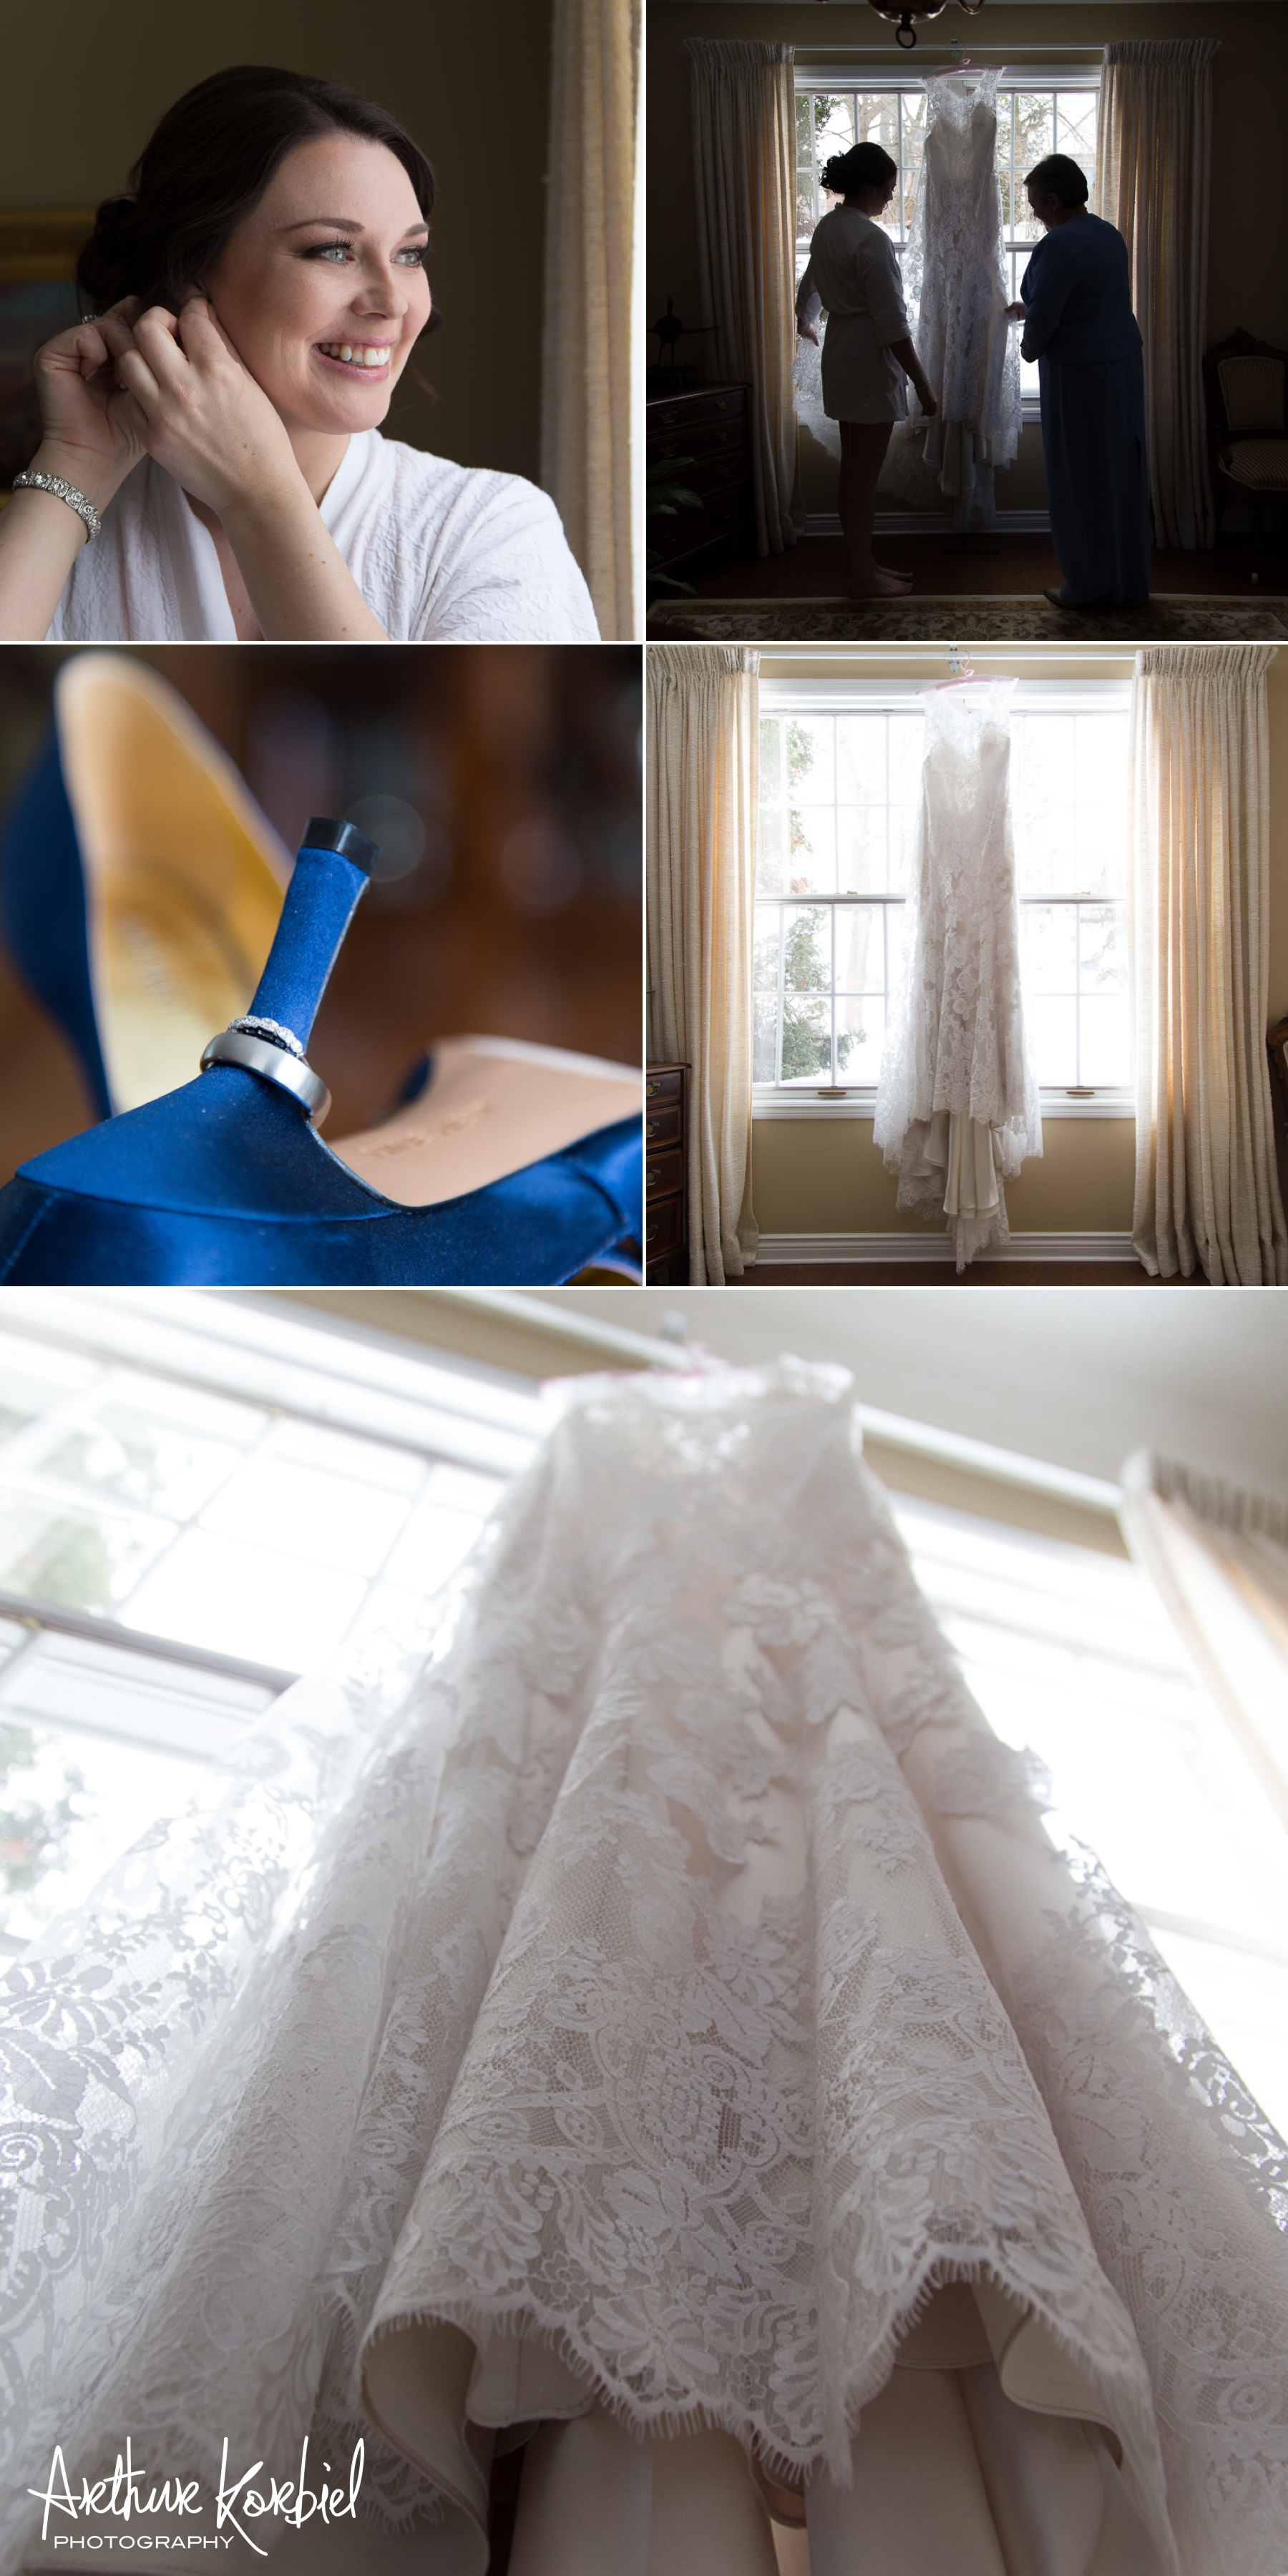 Arthur Korbiel Photography - London Wedding Photographer - Windermere Manor _002.jpg